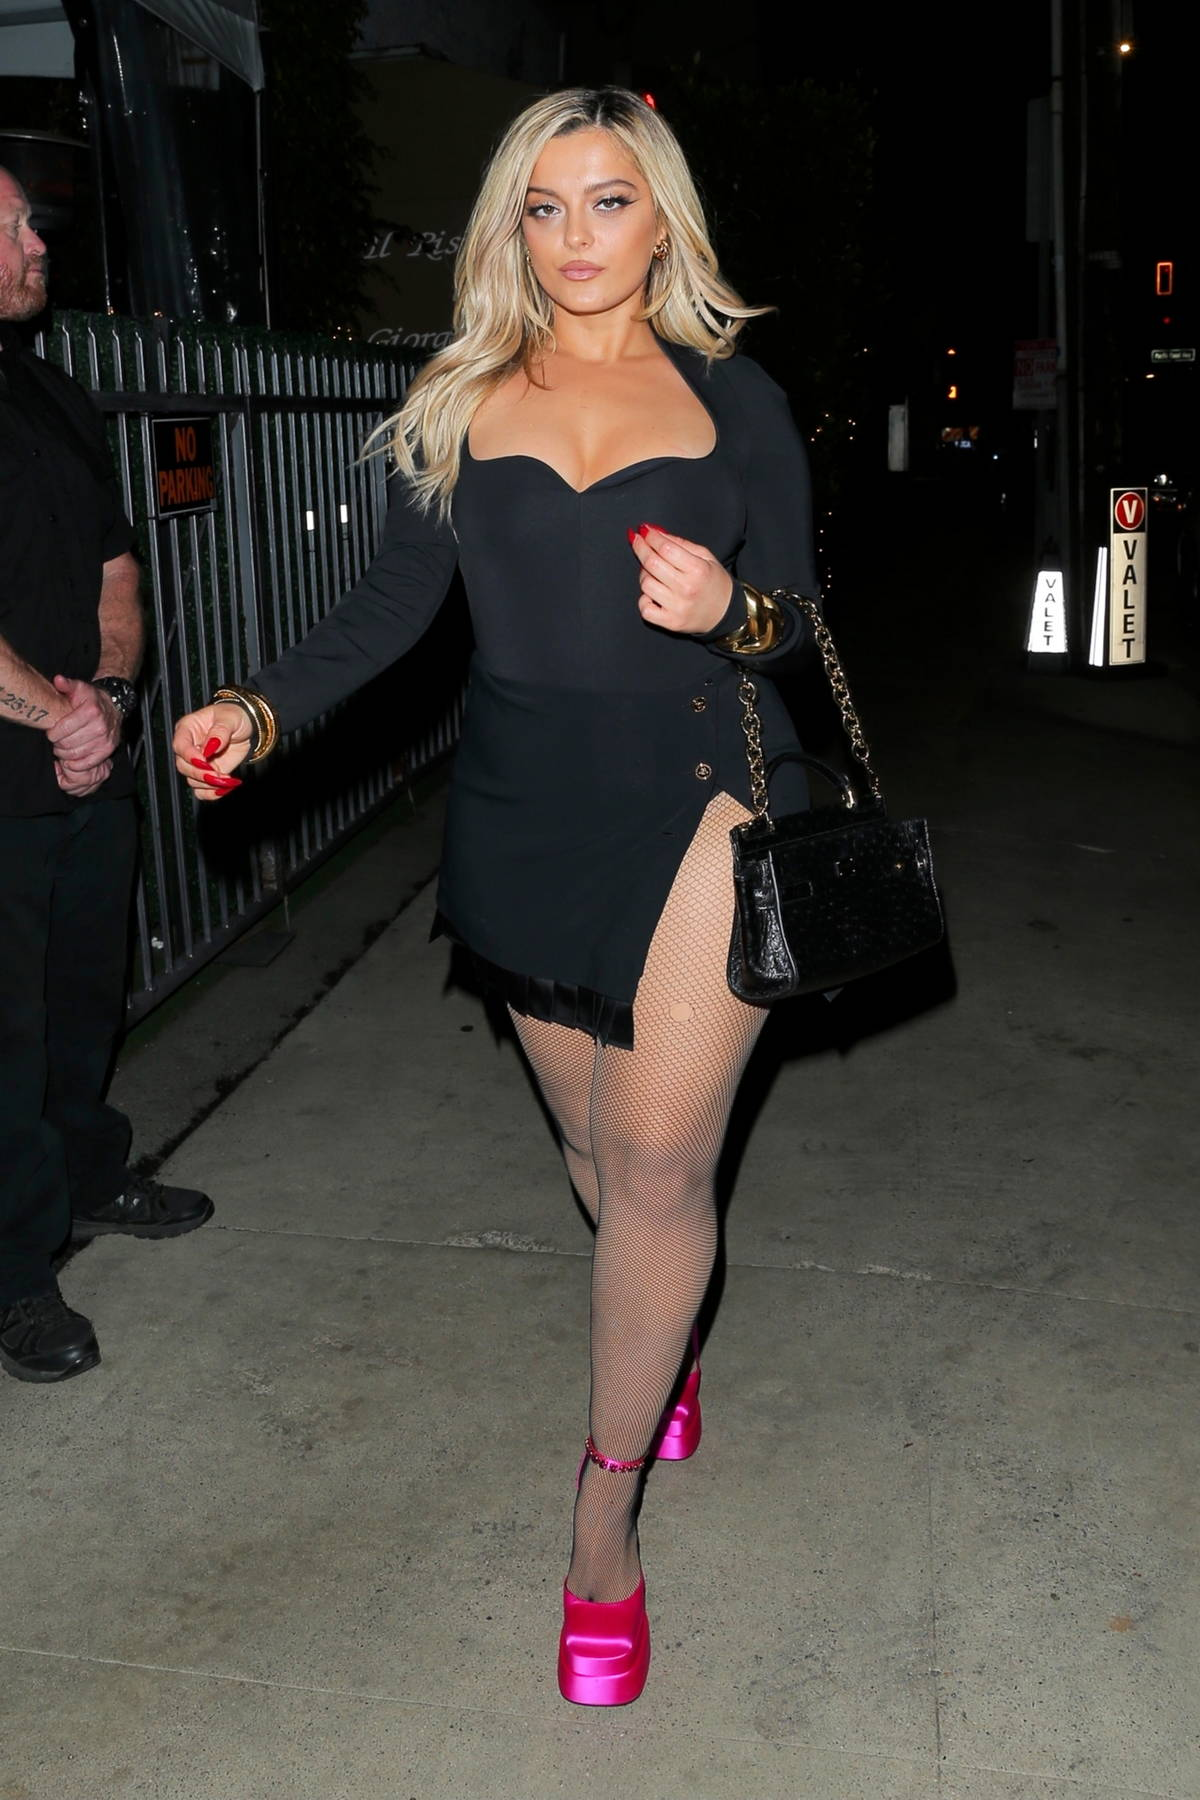 Bebe Rexha puts on a leggy display as she steps out to dinner at Giorgio Baldi in Santa Monica, California